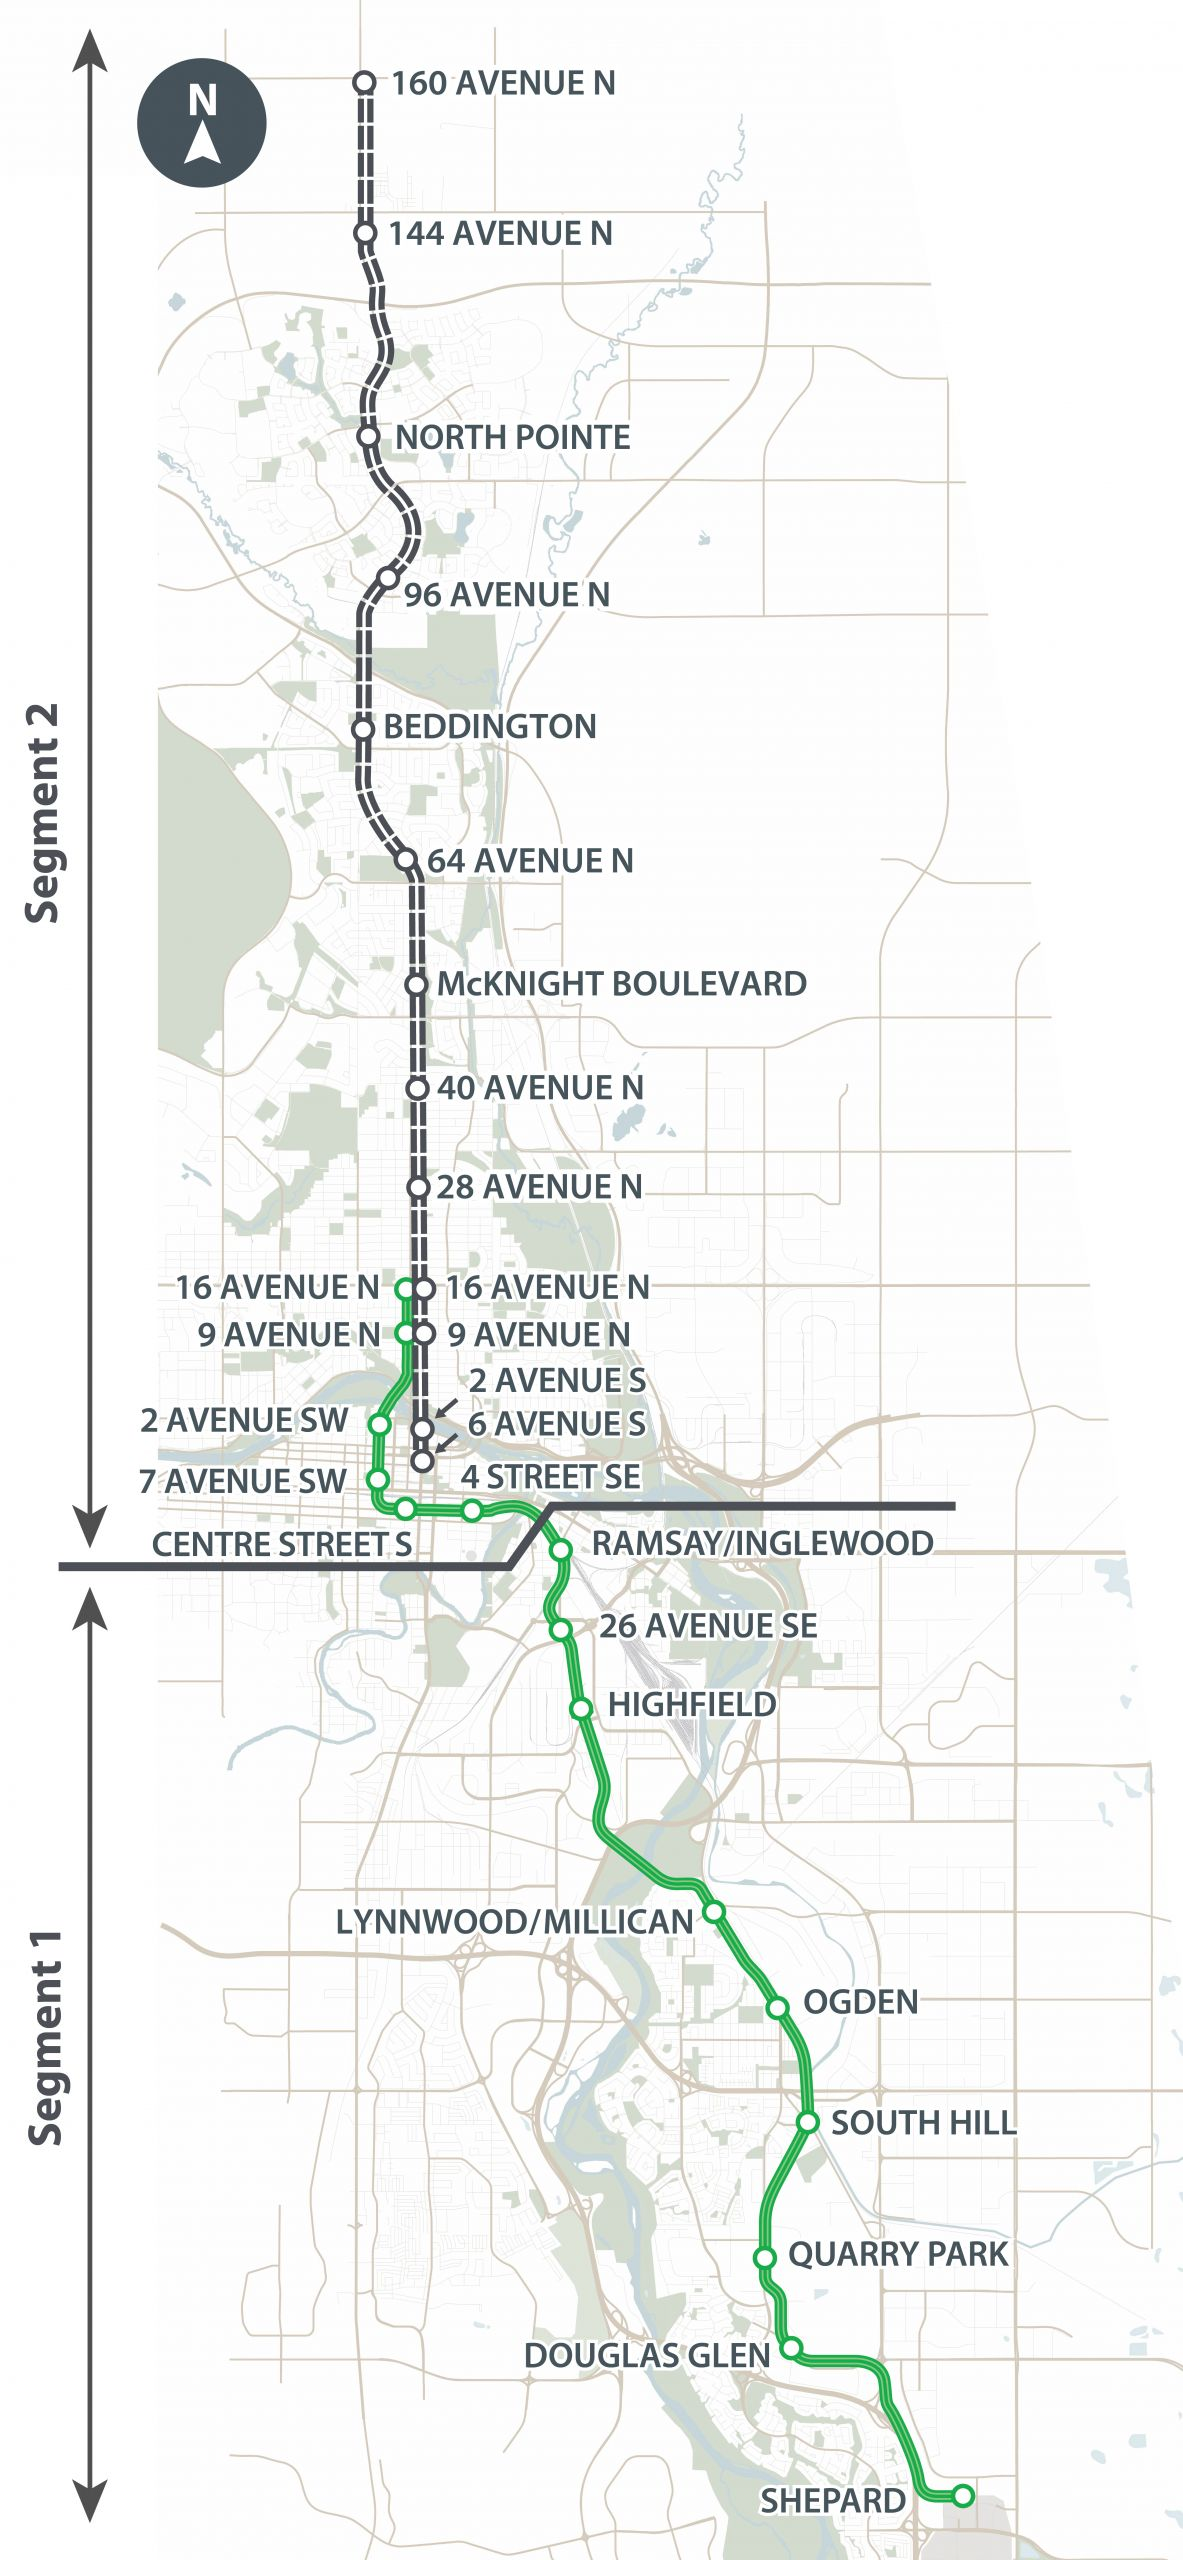 This map shows Stage 1 of the Green Line LRT running from Shepard in the south to 16 Ave in the north. It also includes BRT enhancements up to 160 Ave N.